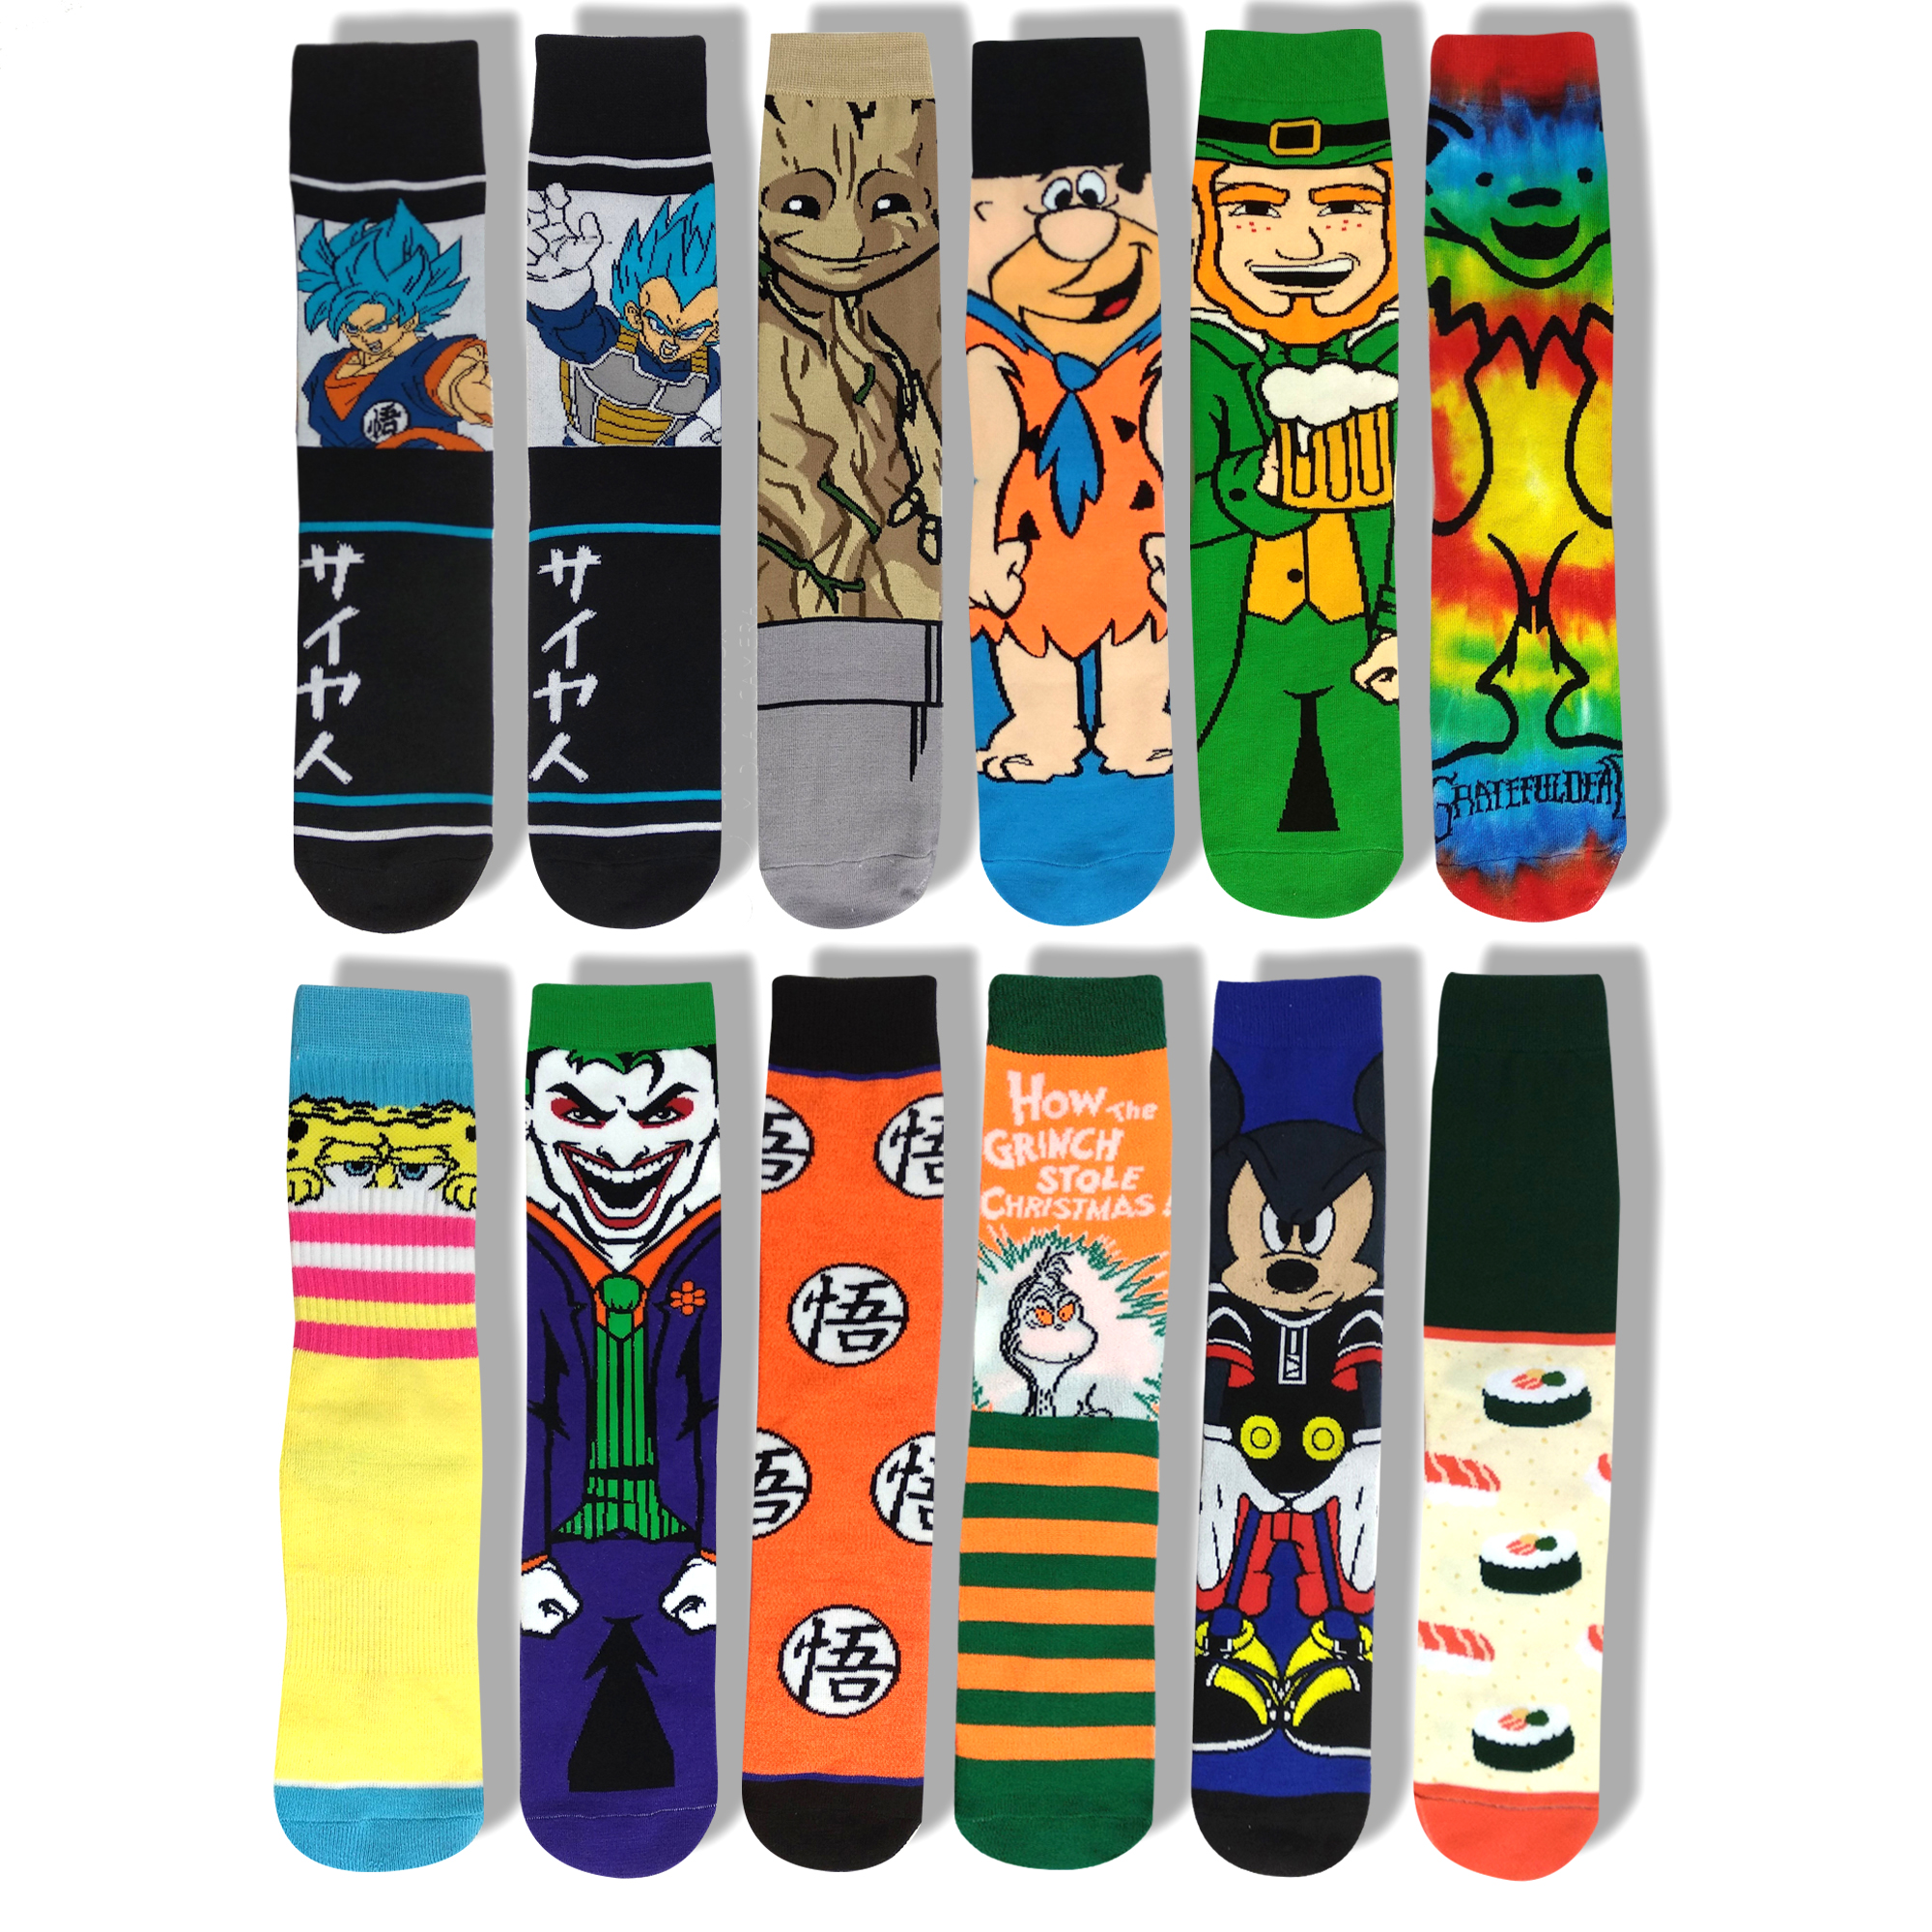 Cartoon Character Socks Joker Grinch Cosplay Personalized Novelty Dragon Ball Socks Casual Cute Colorful Women Skateboard Socks